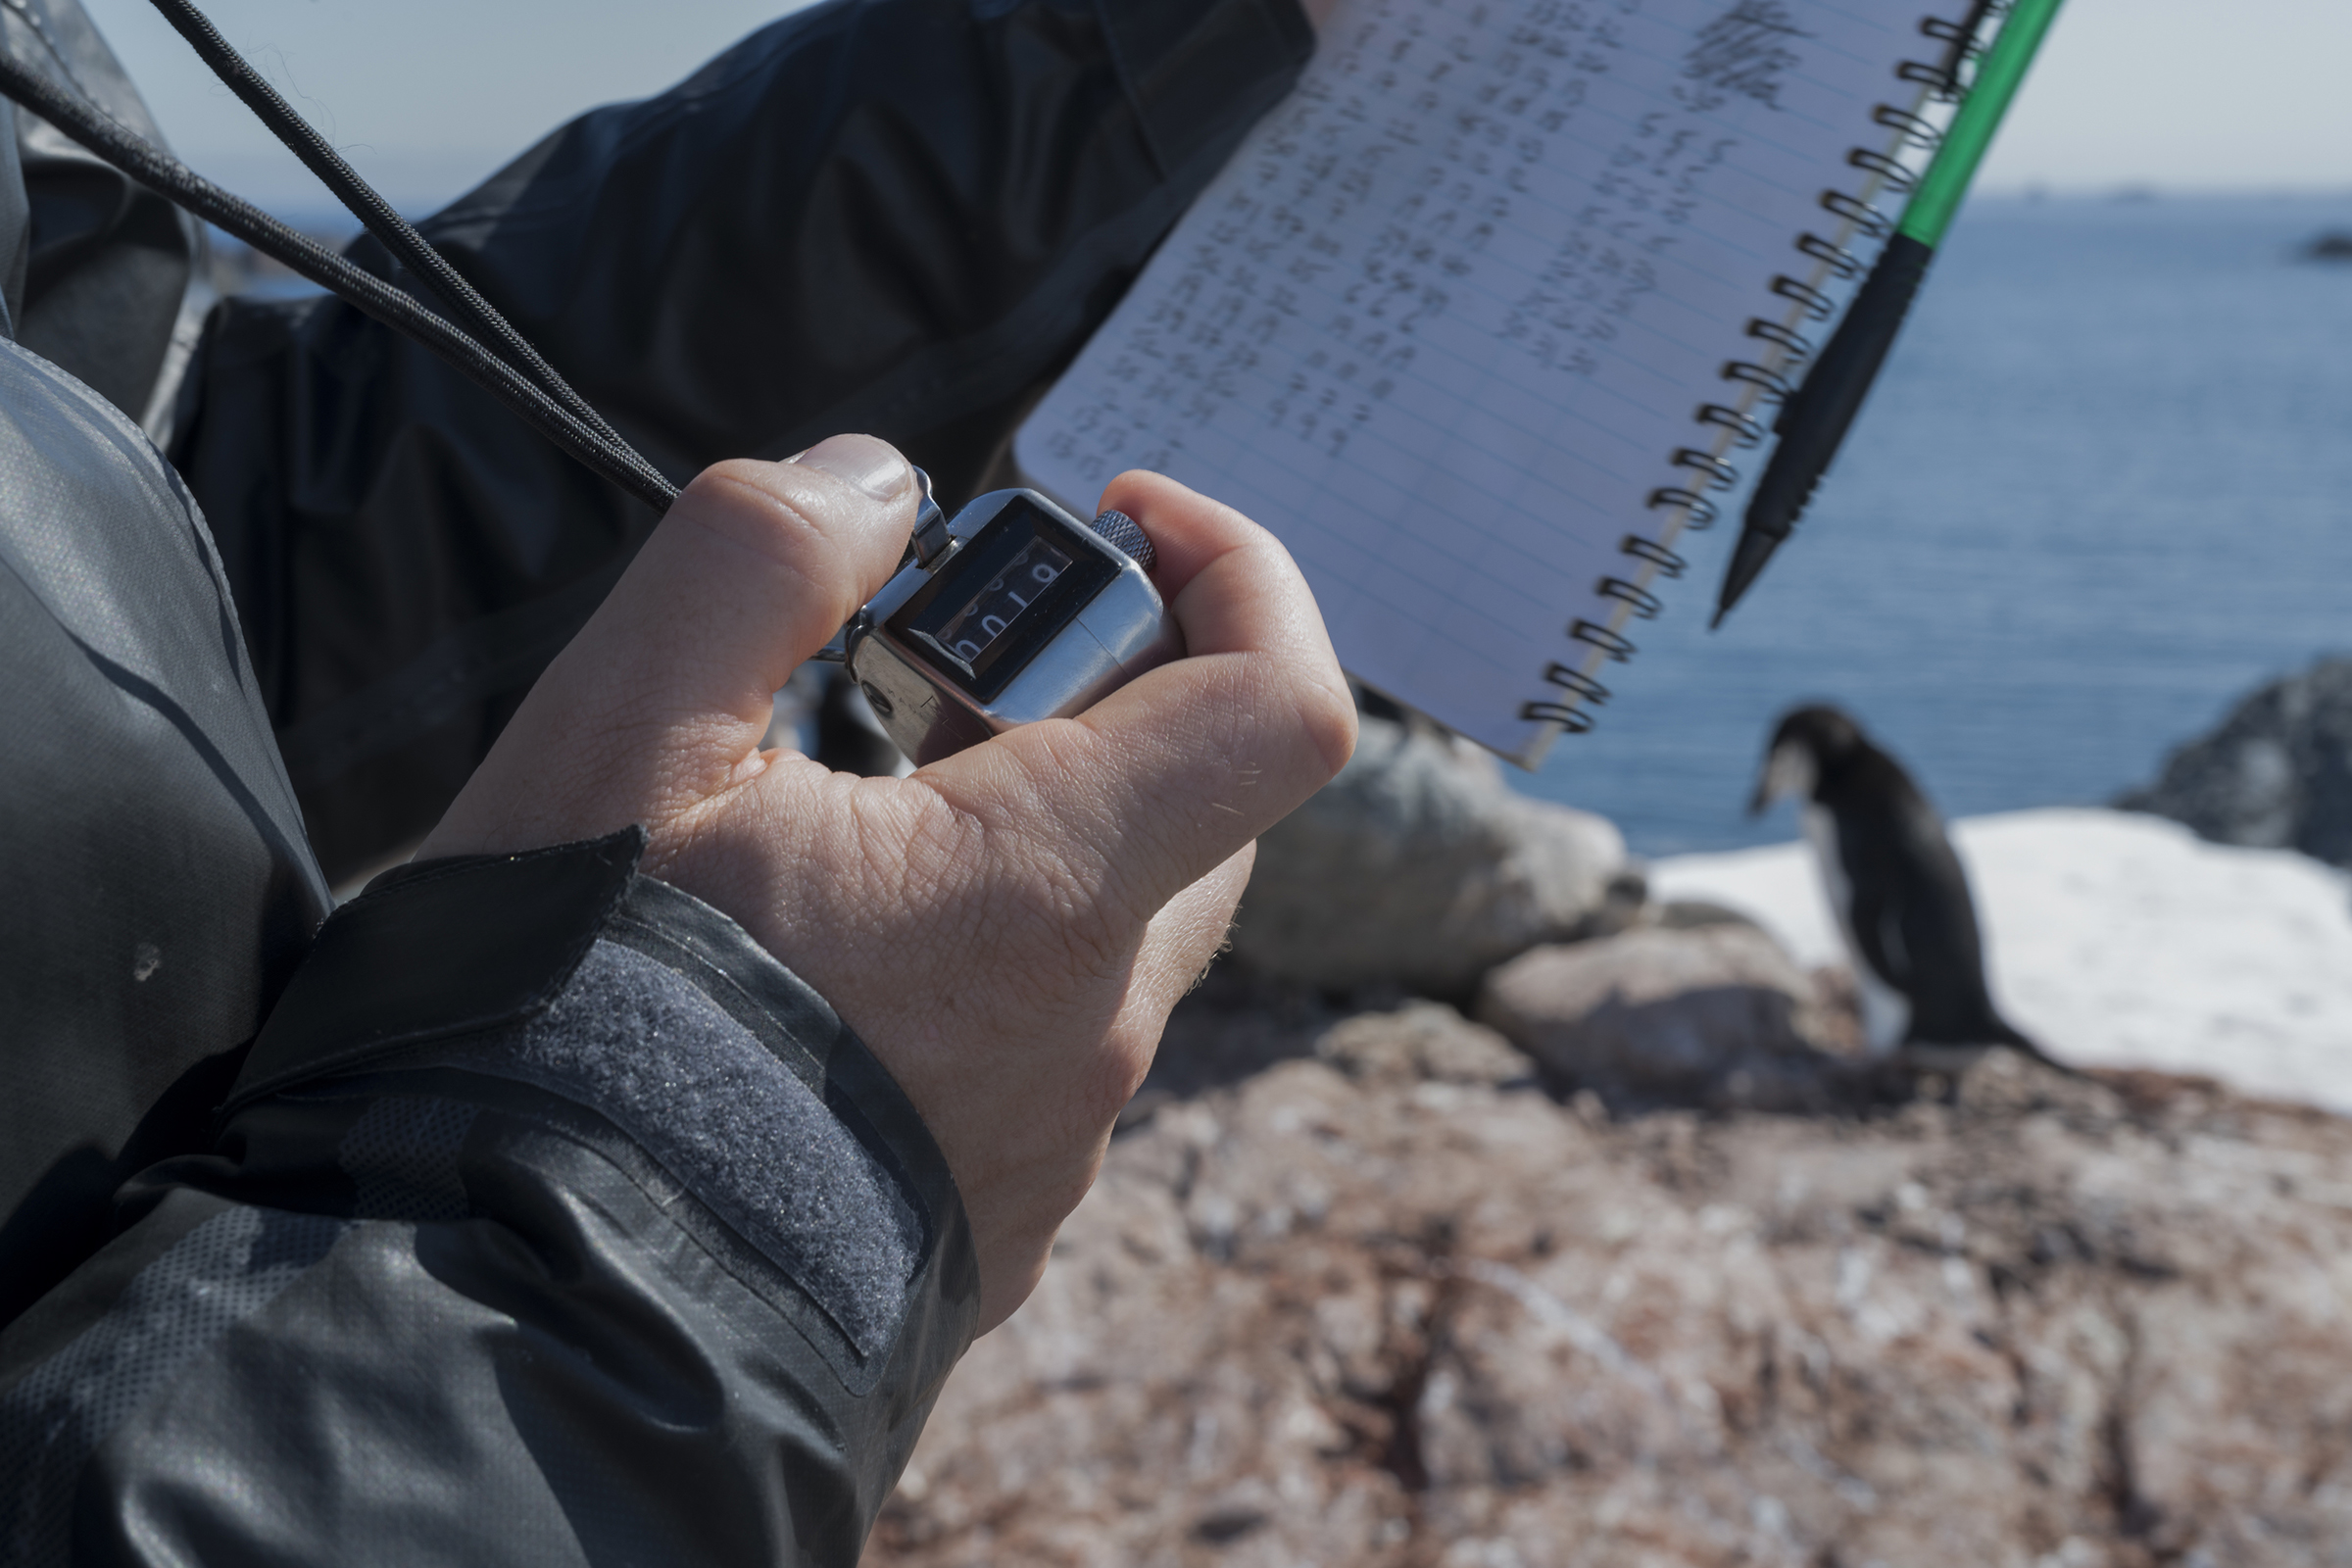 Scientist Noah Strycker from Stony Brook University Scientist uses a clicker to count chinstrap penguins on Quinton Point, Anvers Island in the Antarctic, on Feb. 4, 2020.